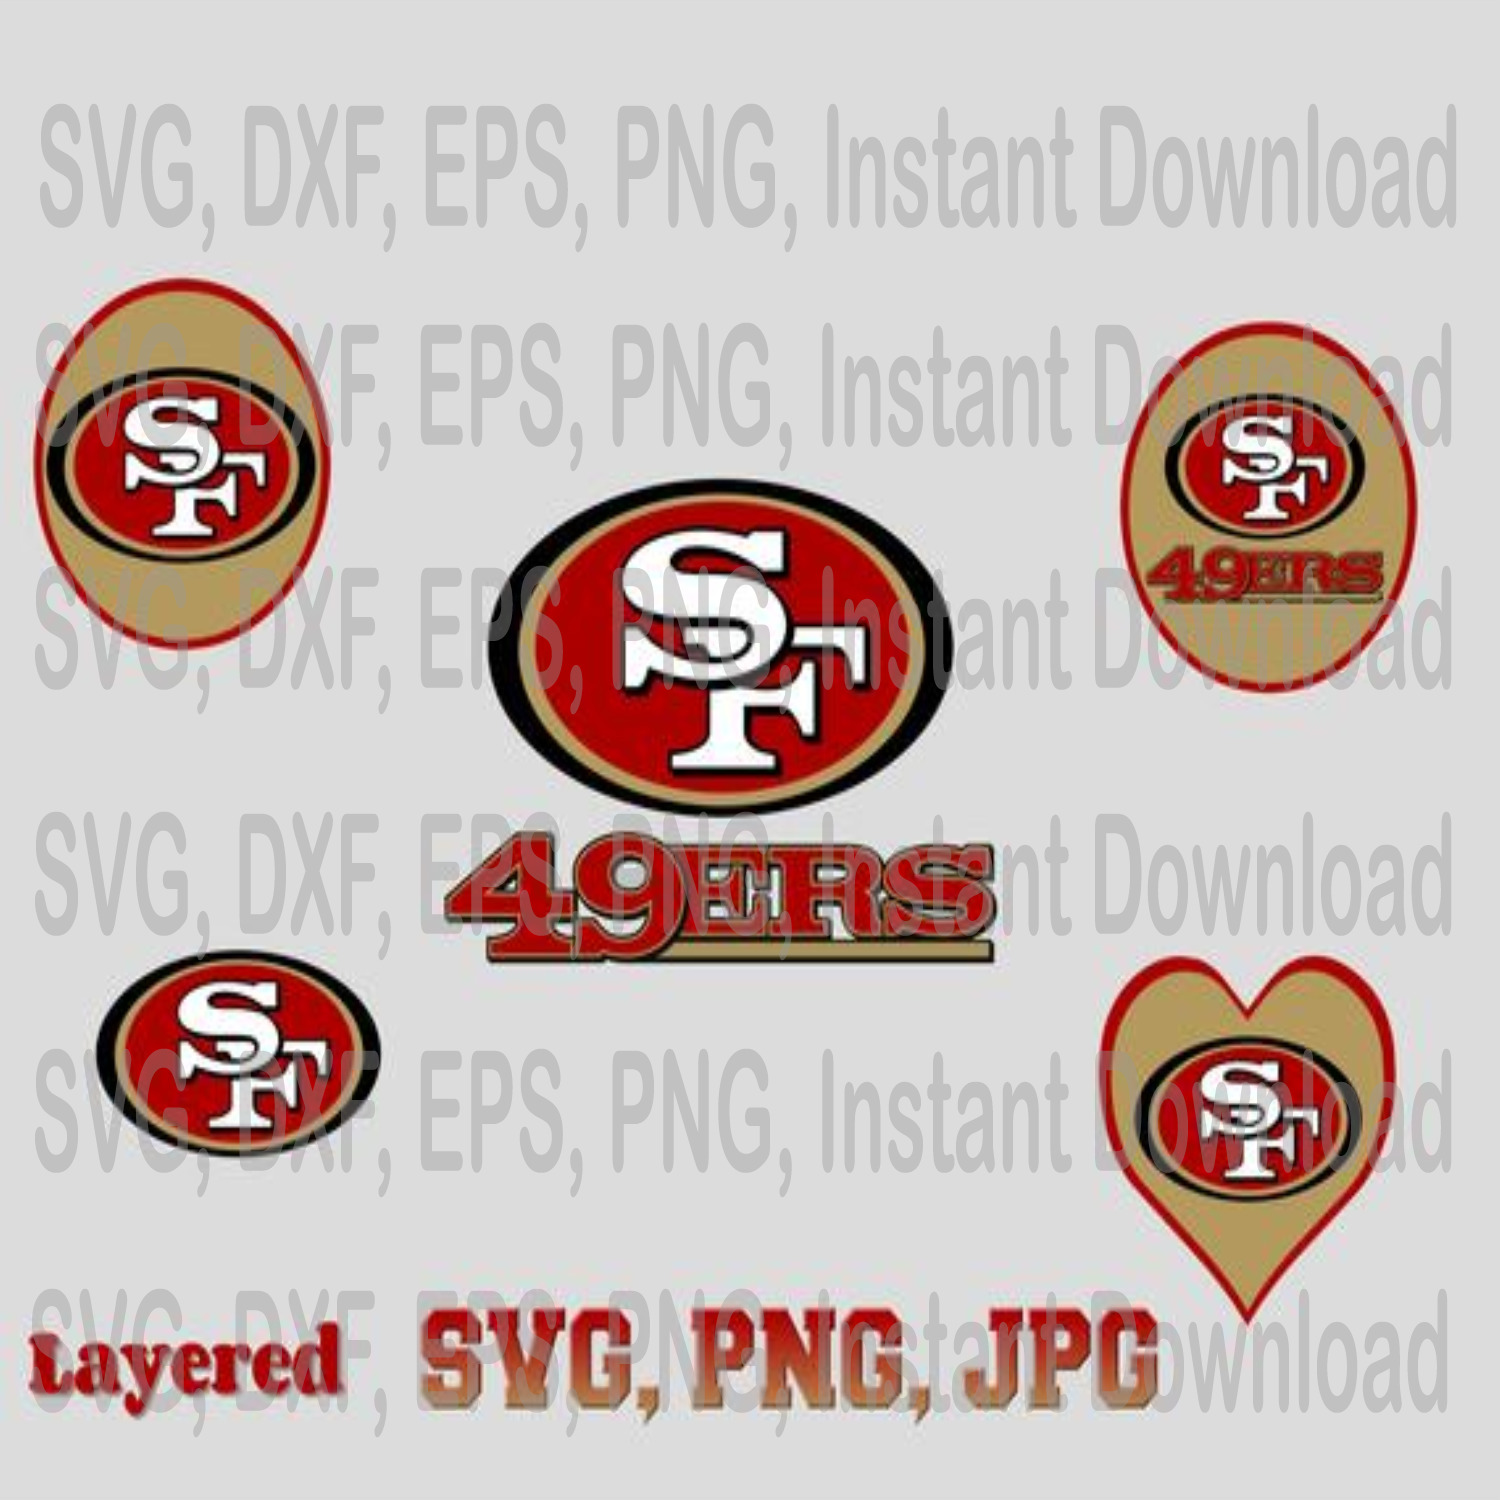 San Francisco Svg Png Jpg 49ers Svg By Eventsshop On Zibbet